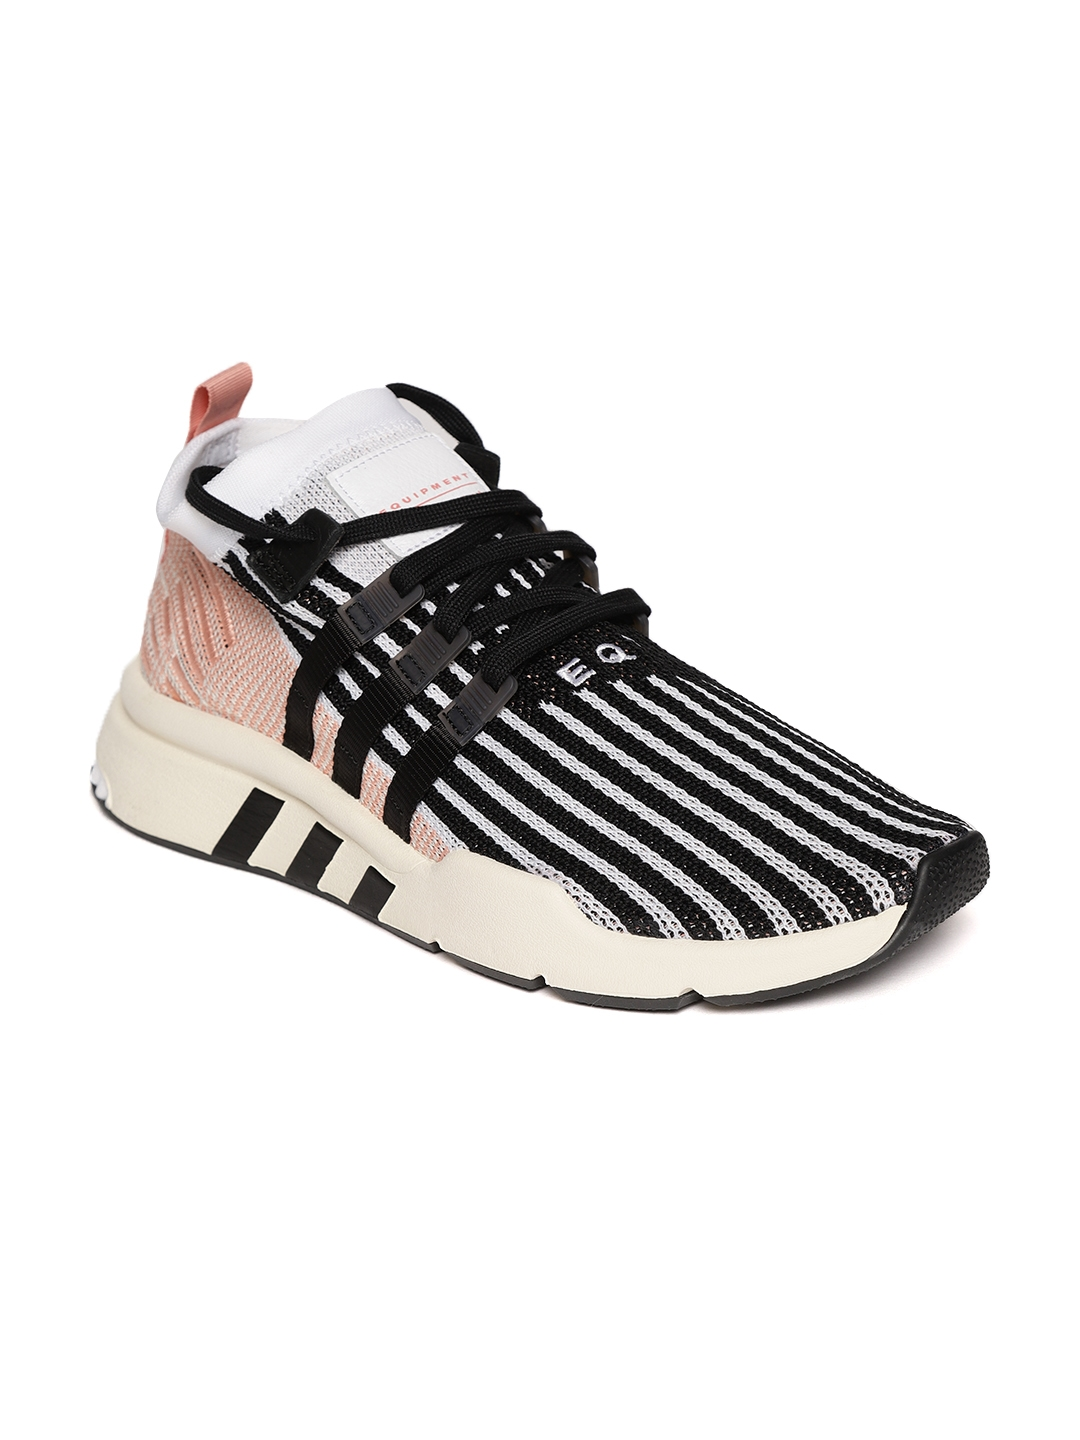 cheap for discount a1430 89ff5 Adidas Originals Men Black   White EQT Support Mid ADV PK Striped Sneakers